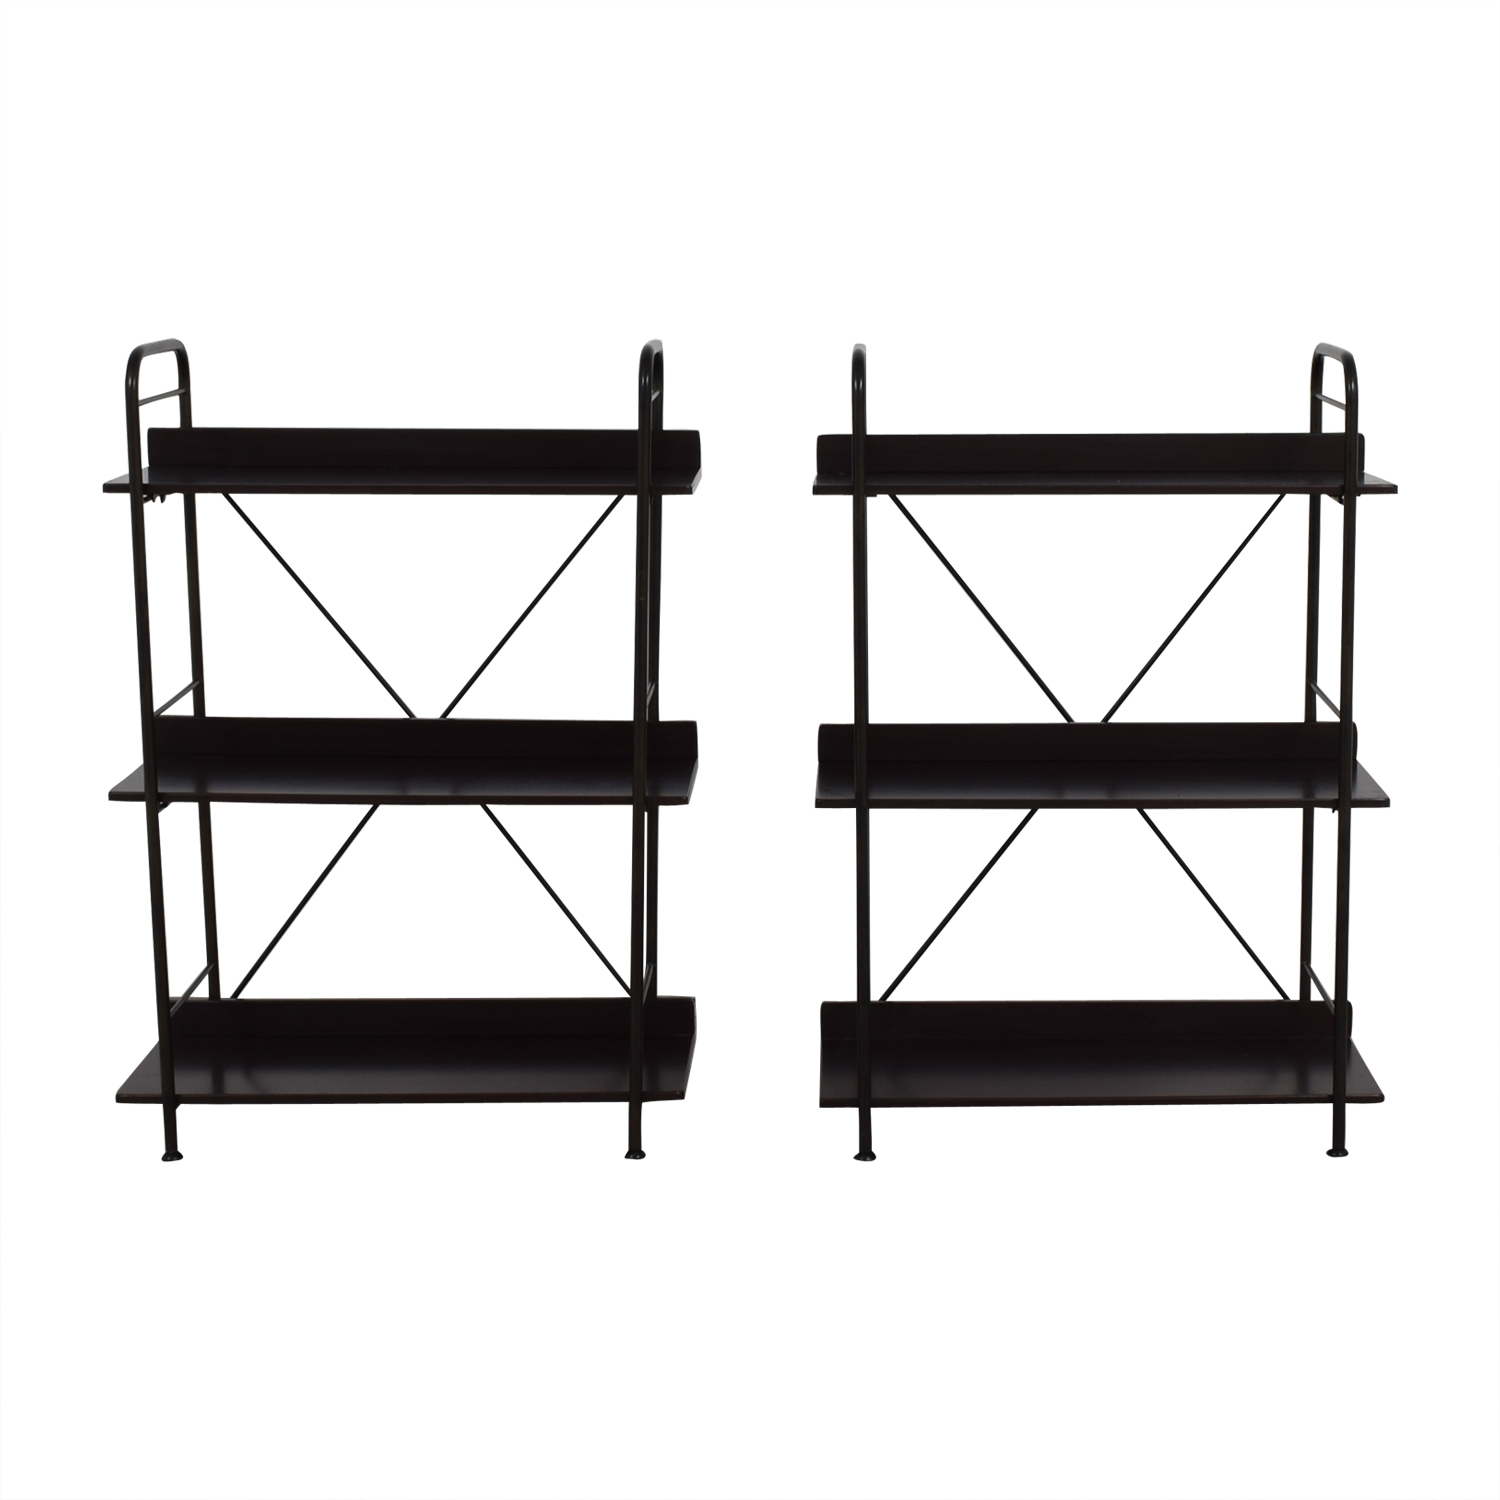 Ikea Black Bookcases Or Storage Shelves